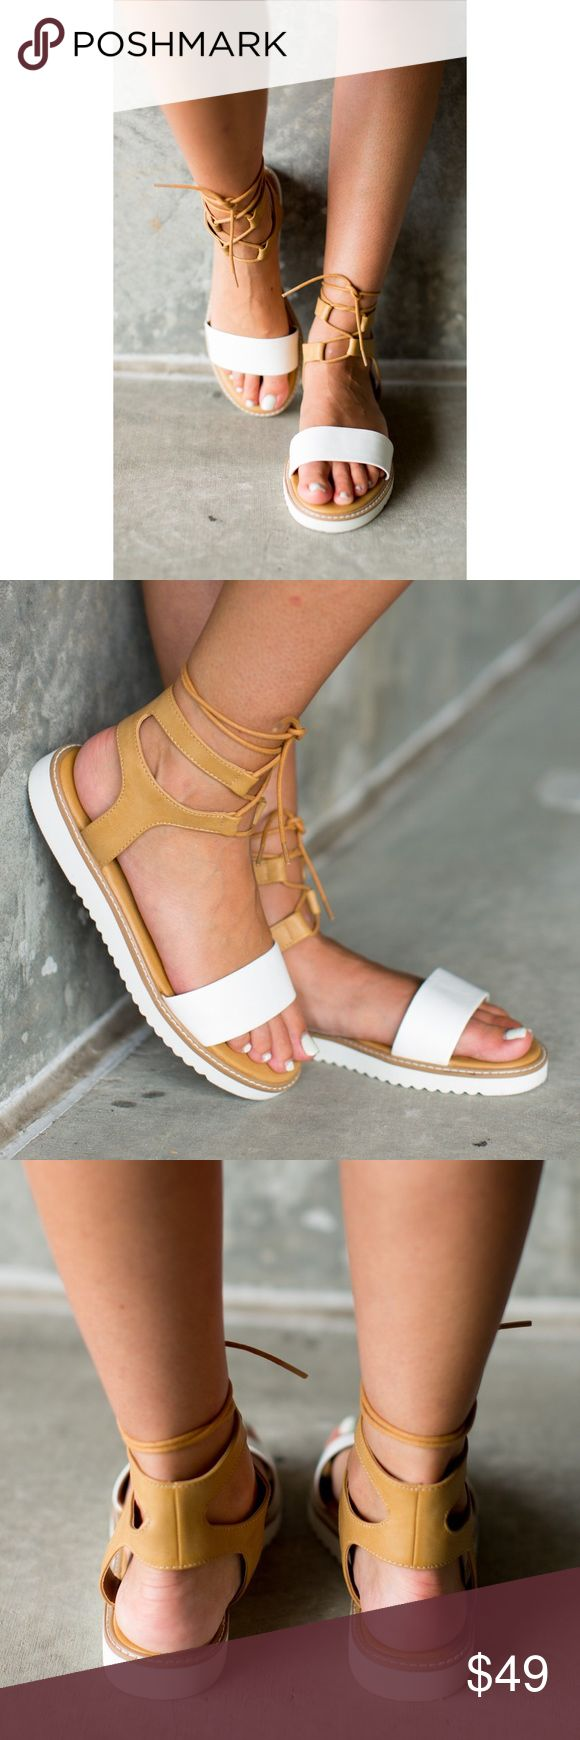 """Strappy Flat Gladiator Sandals Synthetic PU. Tan & White.  Heel measures approximately 0.75"""" Platform measures approximately 0.5 inches Sporty sandal BC Footwear Shoes Sandals"""